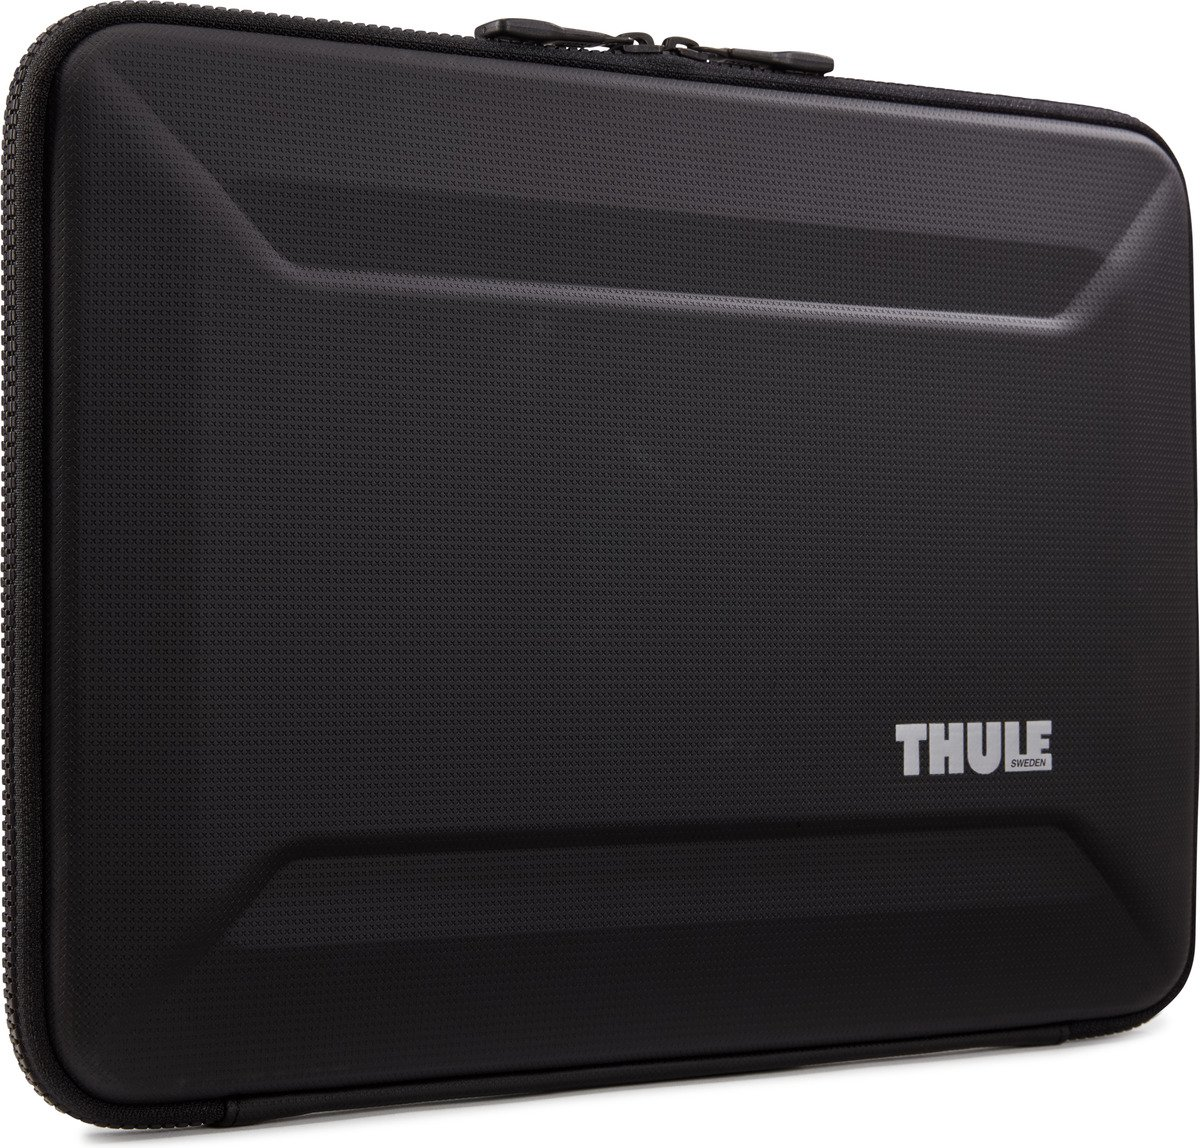 "Etui, Case na Macbook 15"" Thule Gauntlet - czarny"